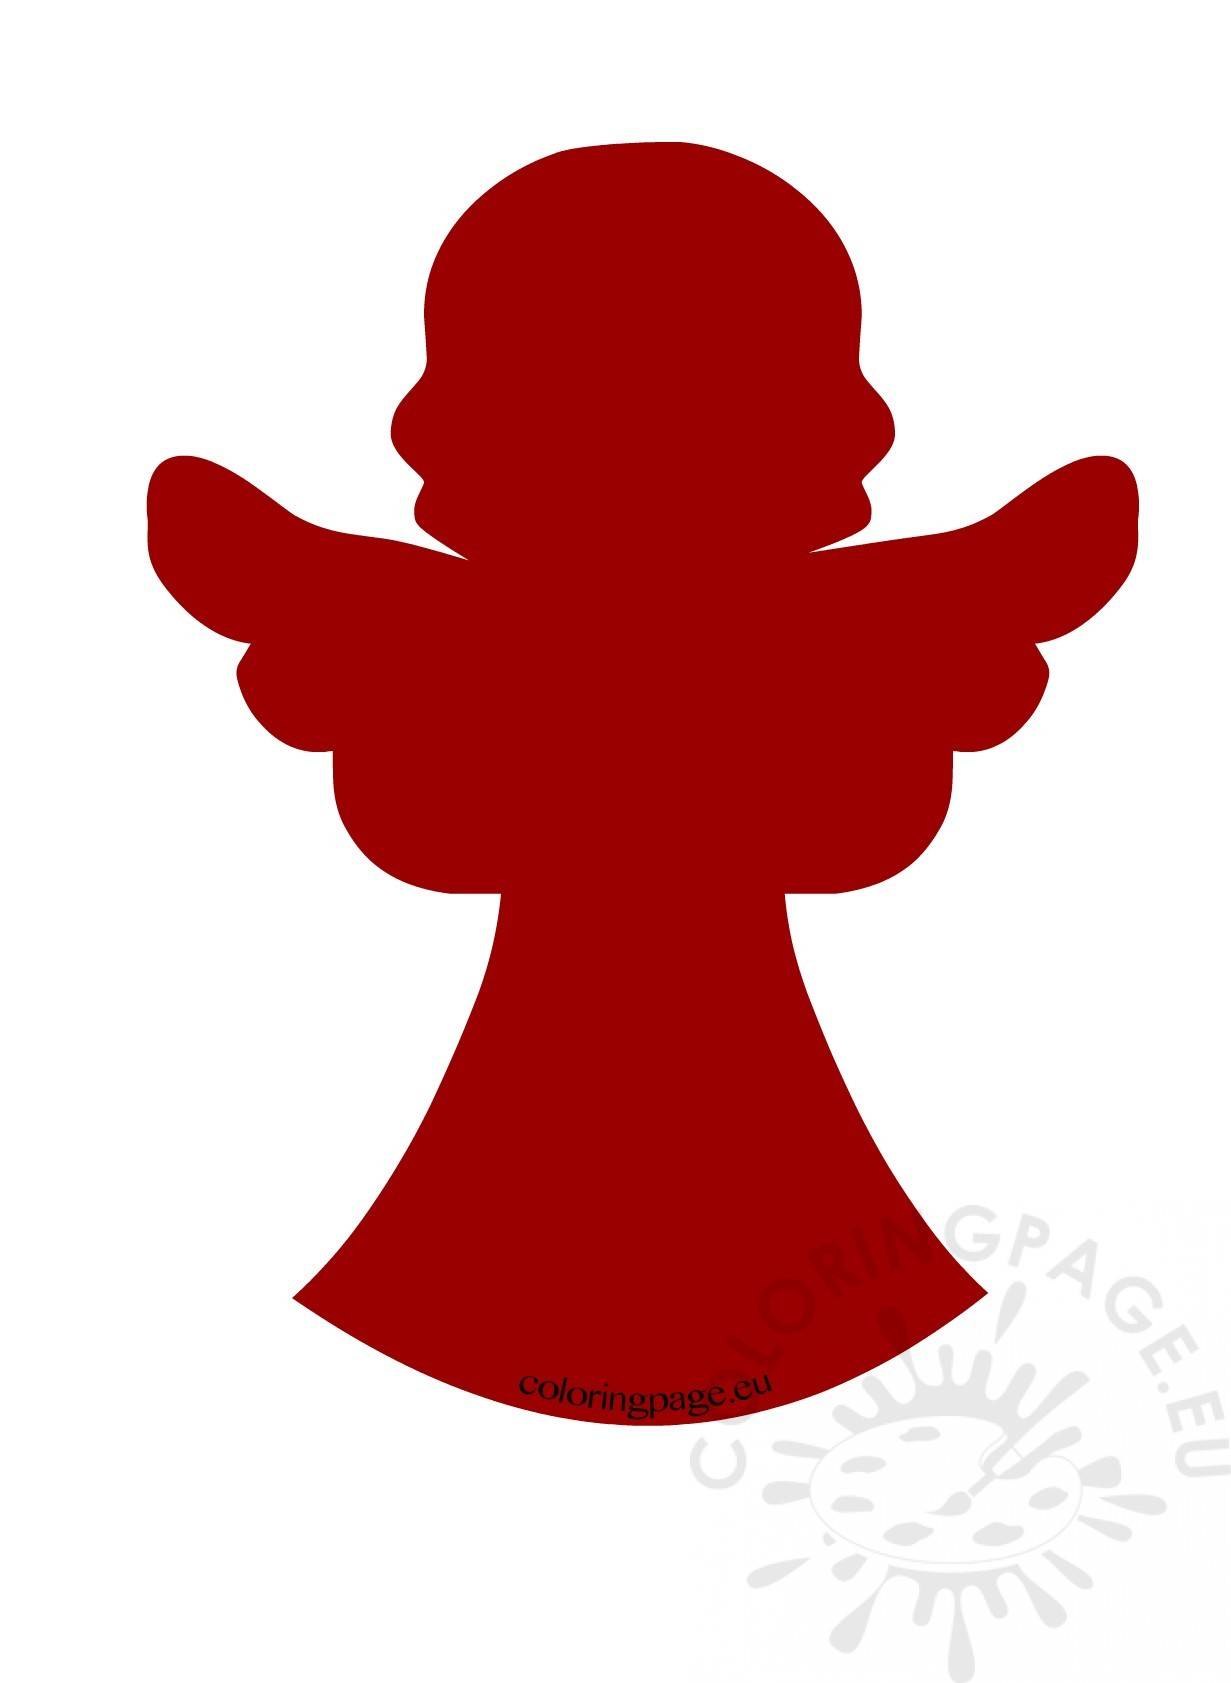 Angel Silhouette at GetDrawings.com | Free for personal use Angel ...